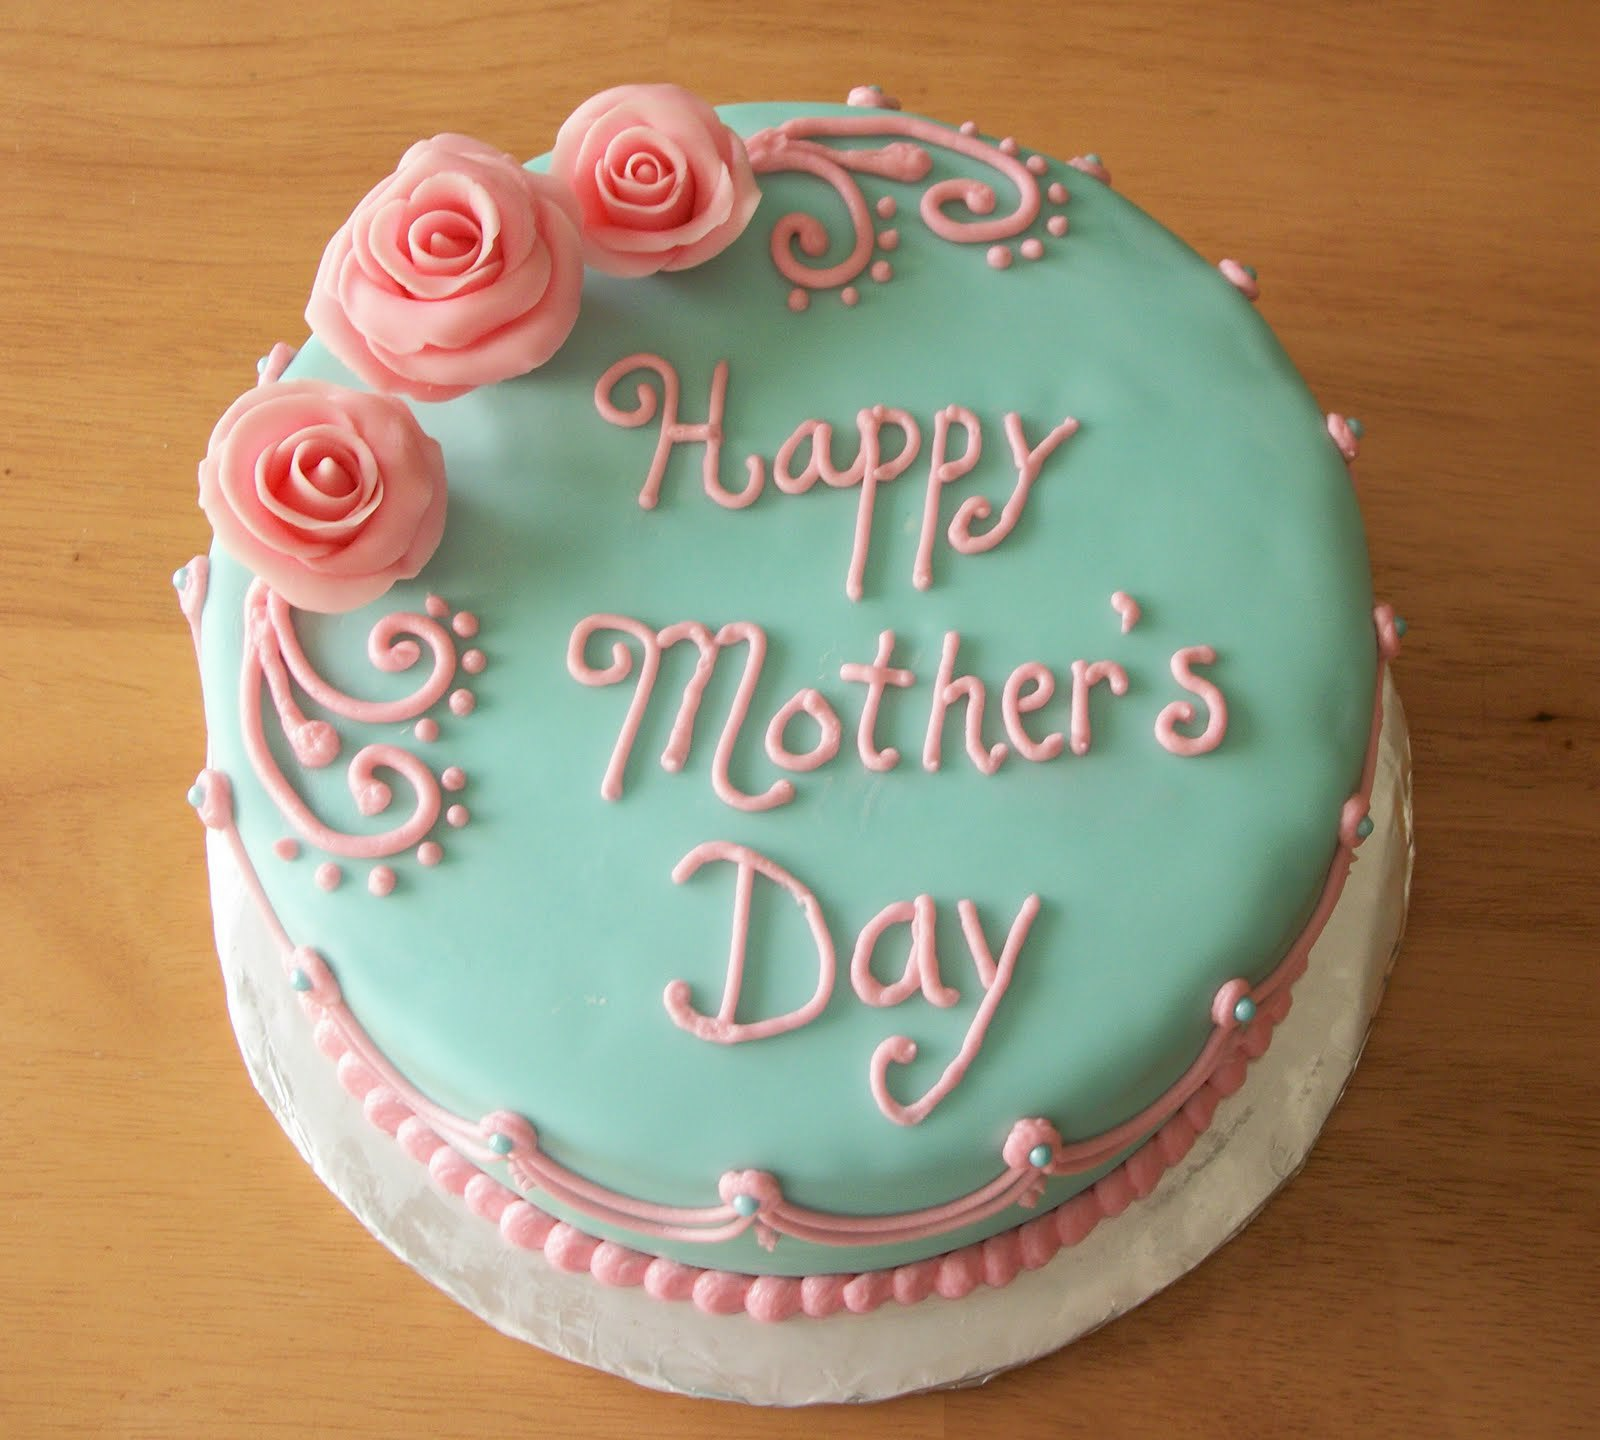 Happy Mother s Day Cakes Wallpapers Images Photos Pictures ...